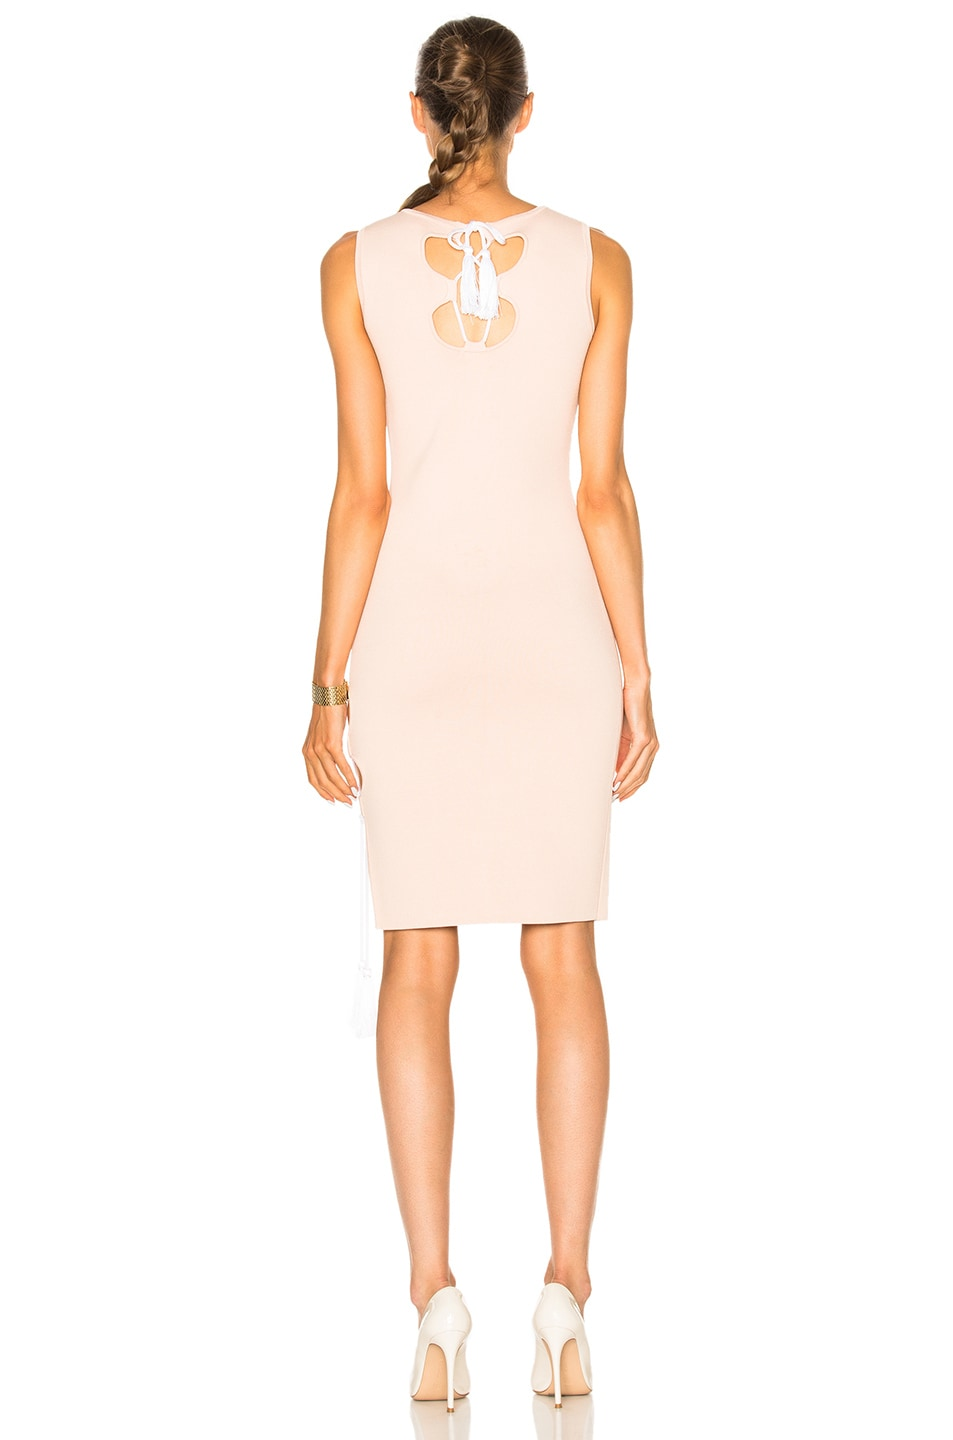 Image 4 of JONATHAN SIMKHAI for FWRD Knit Lace-up Dress in Nude